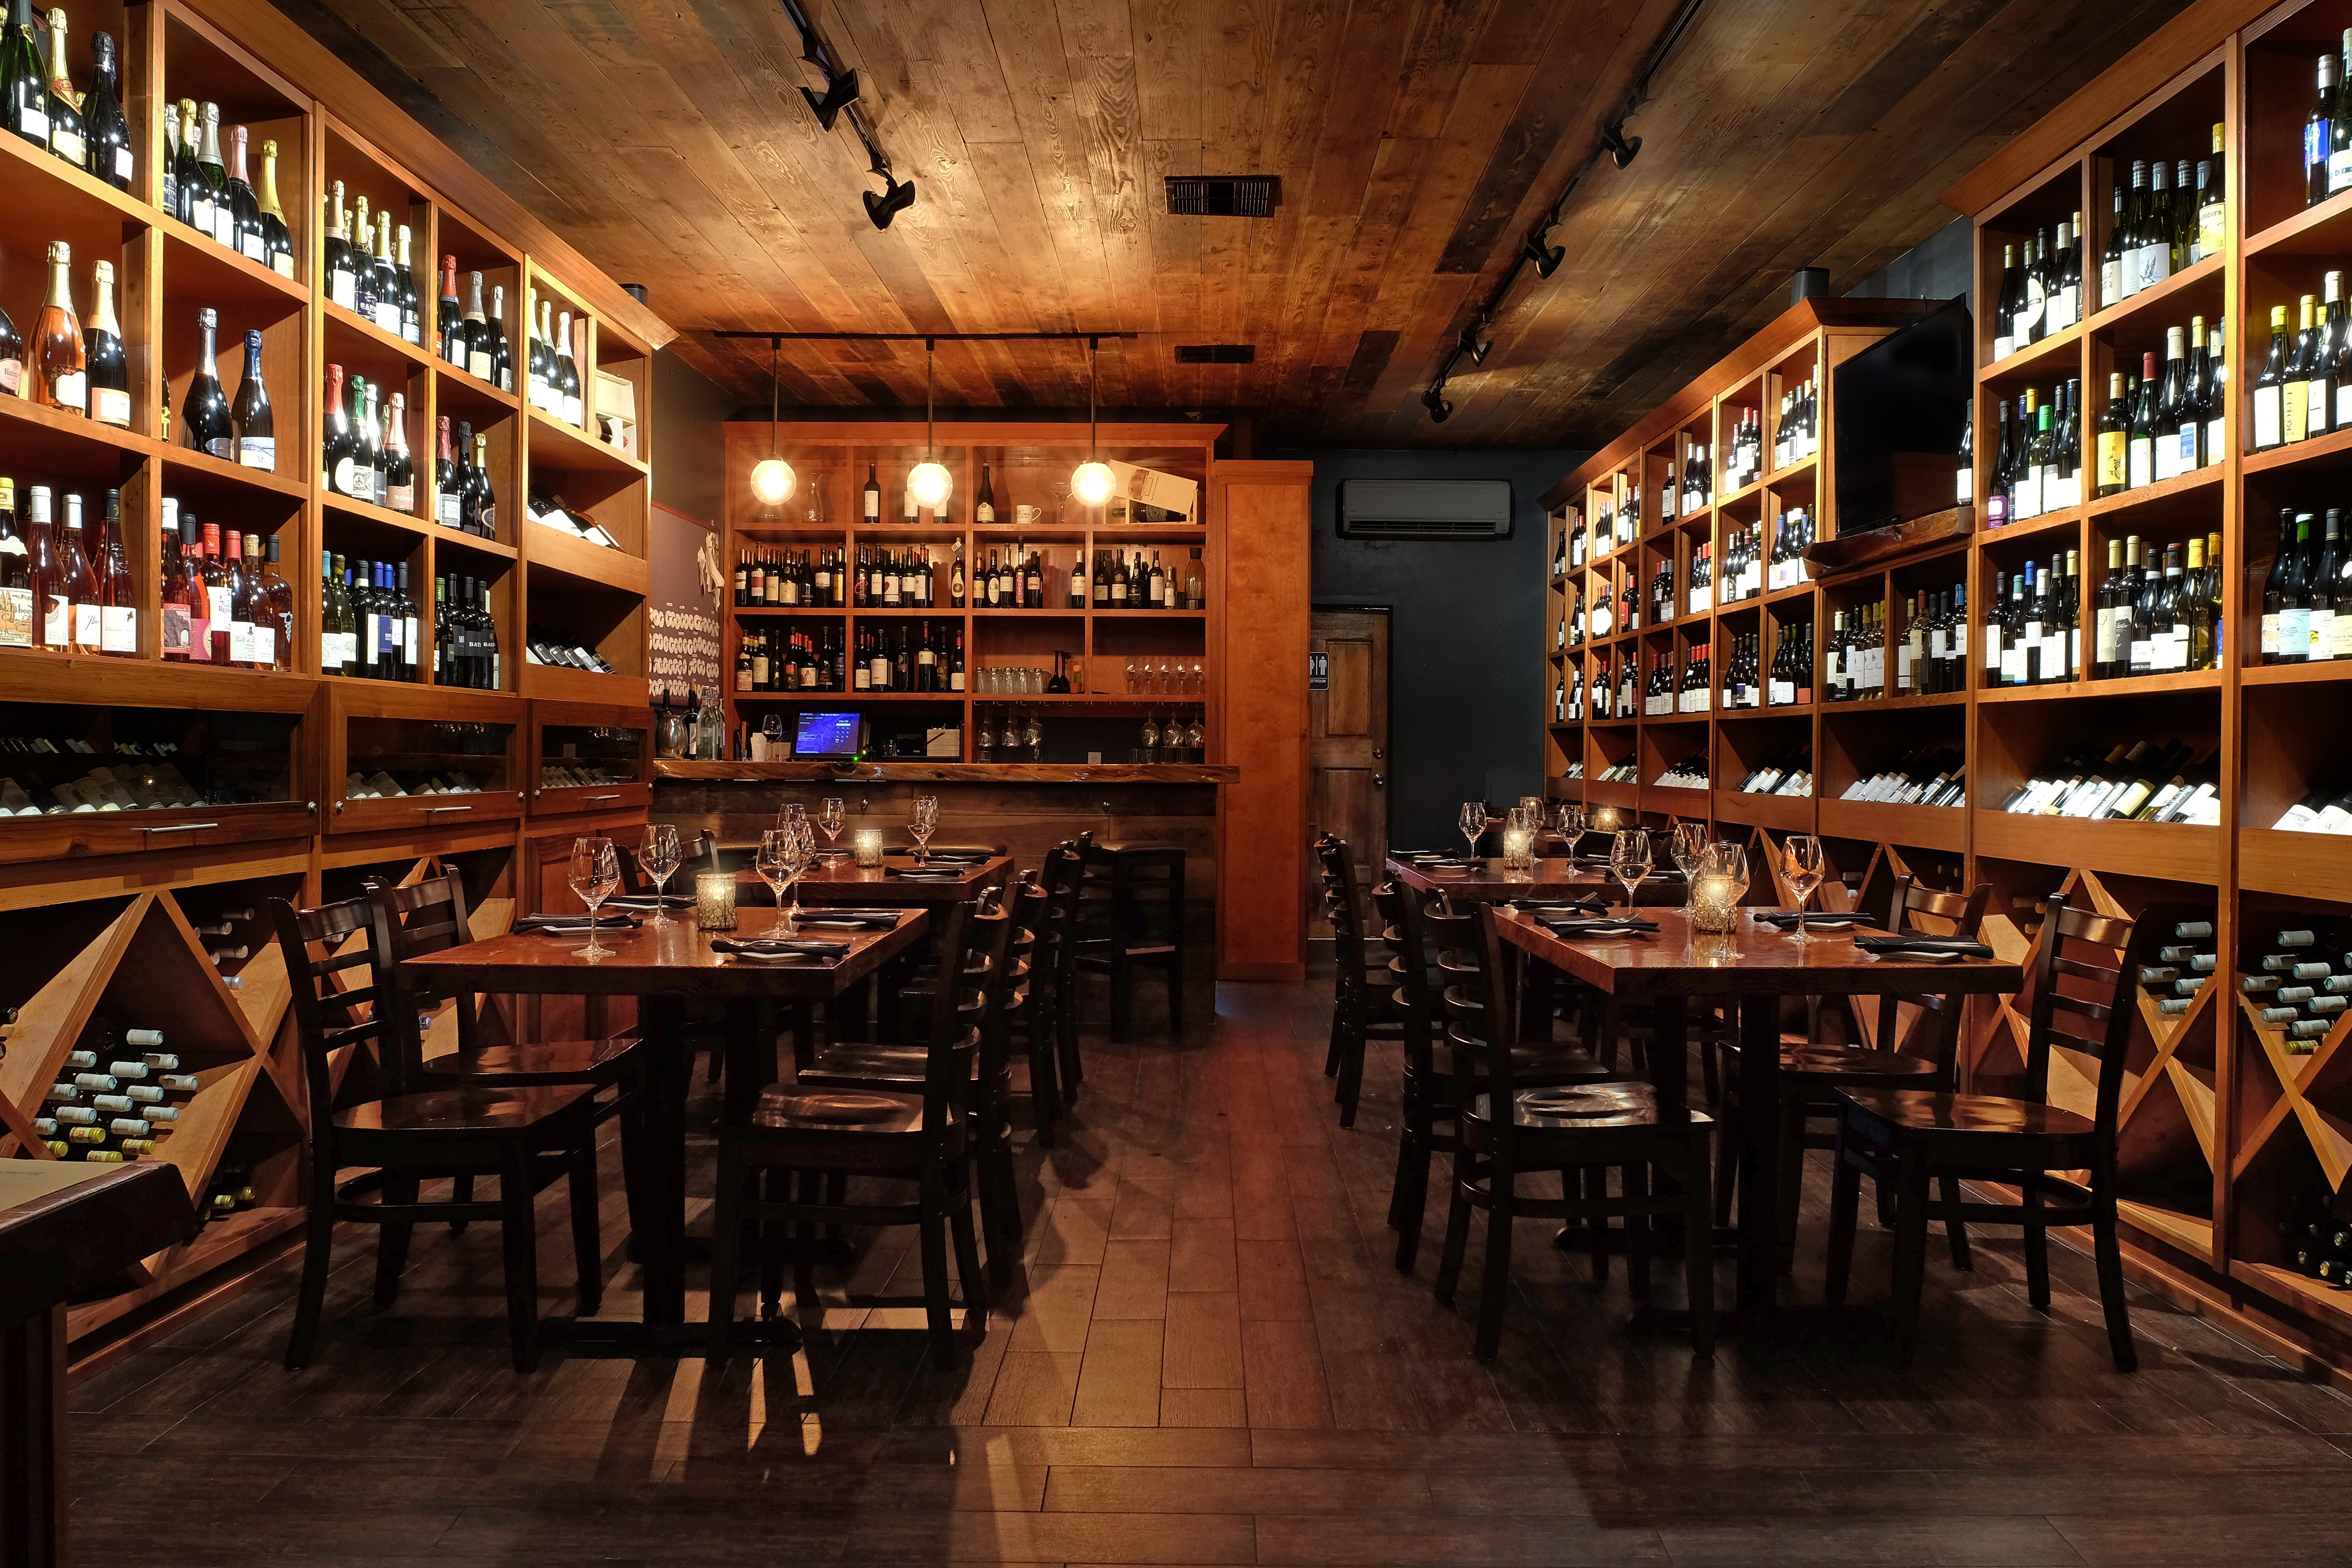 Photo #9 Large Reservation in Wine Room - Seated at The Barrel Room